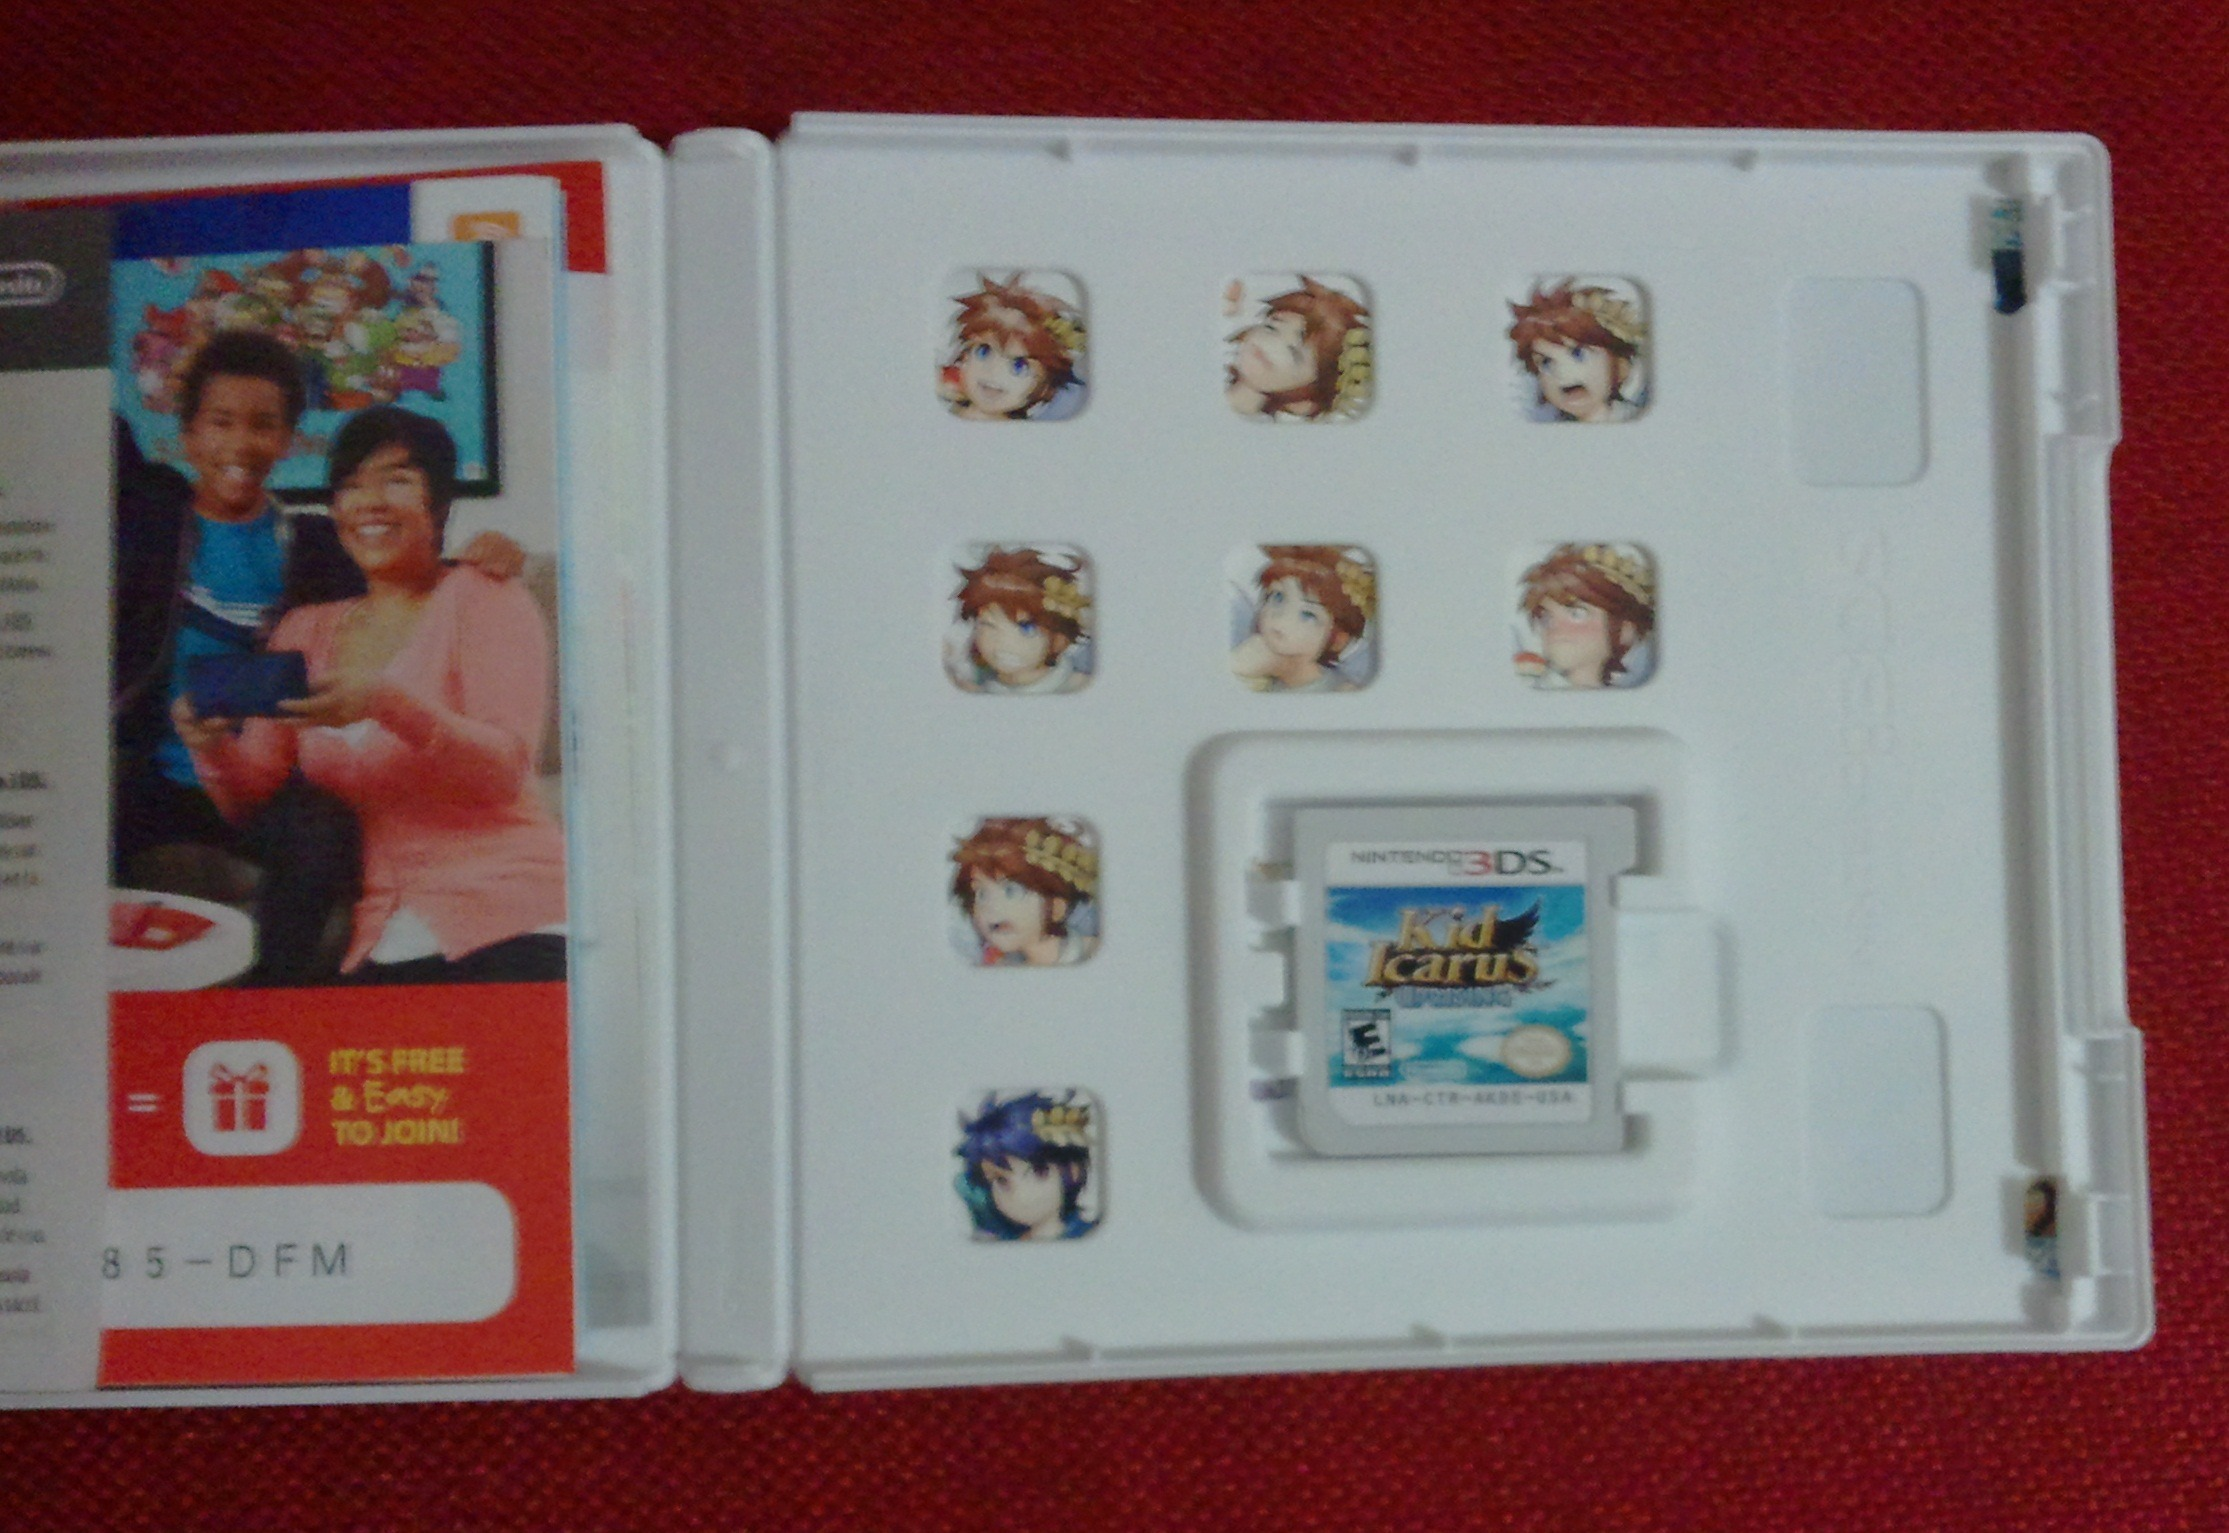 Kid Icarus: Uprising review: Is it bad if the boxart is my favorite part of the game?